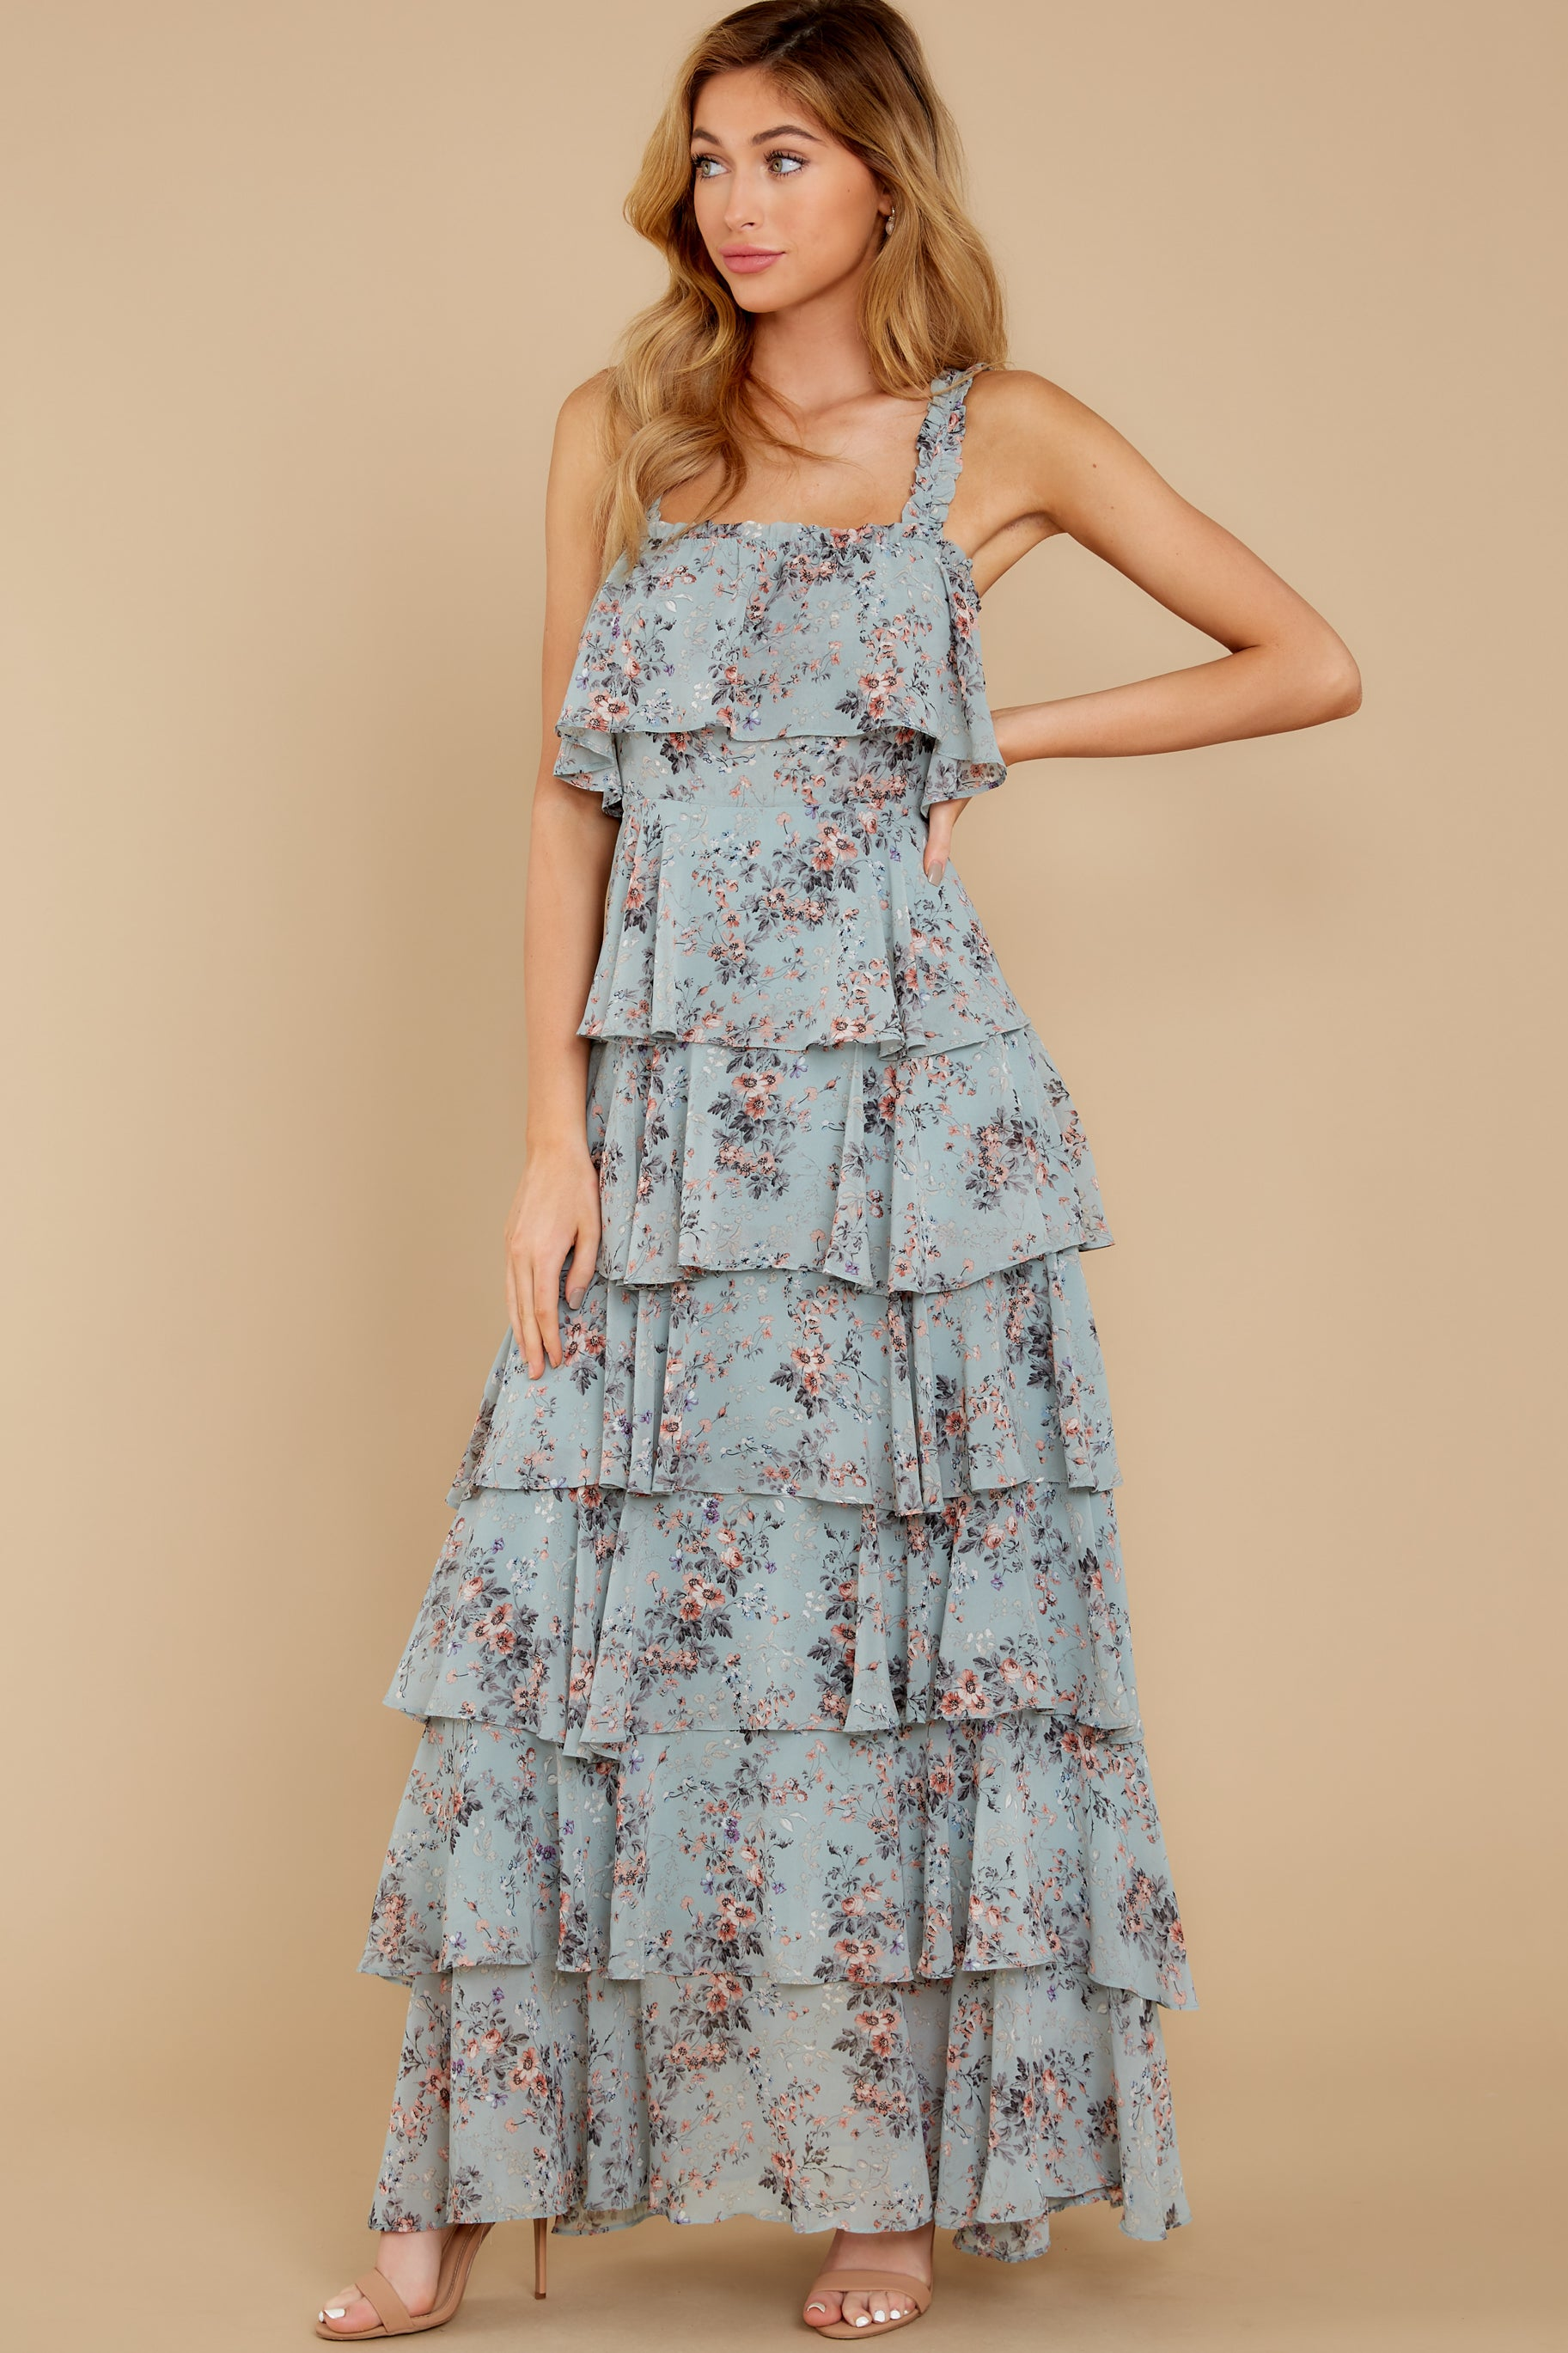 4 The Story's Not Over Light Blue Floral Print Maxi Dress at reddress.com